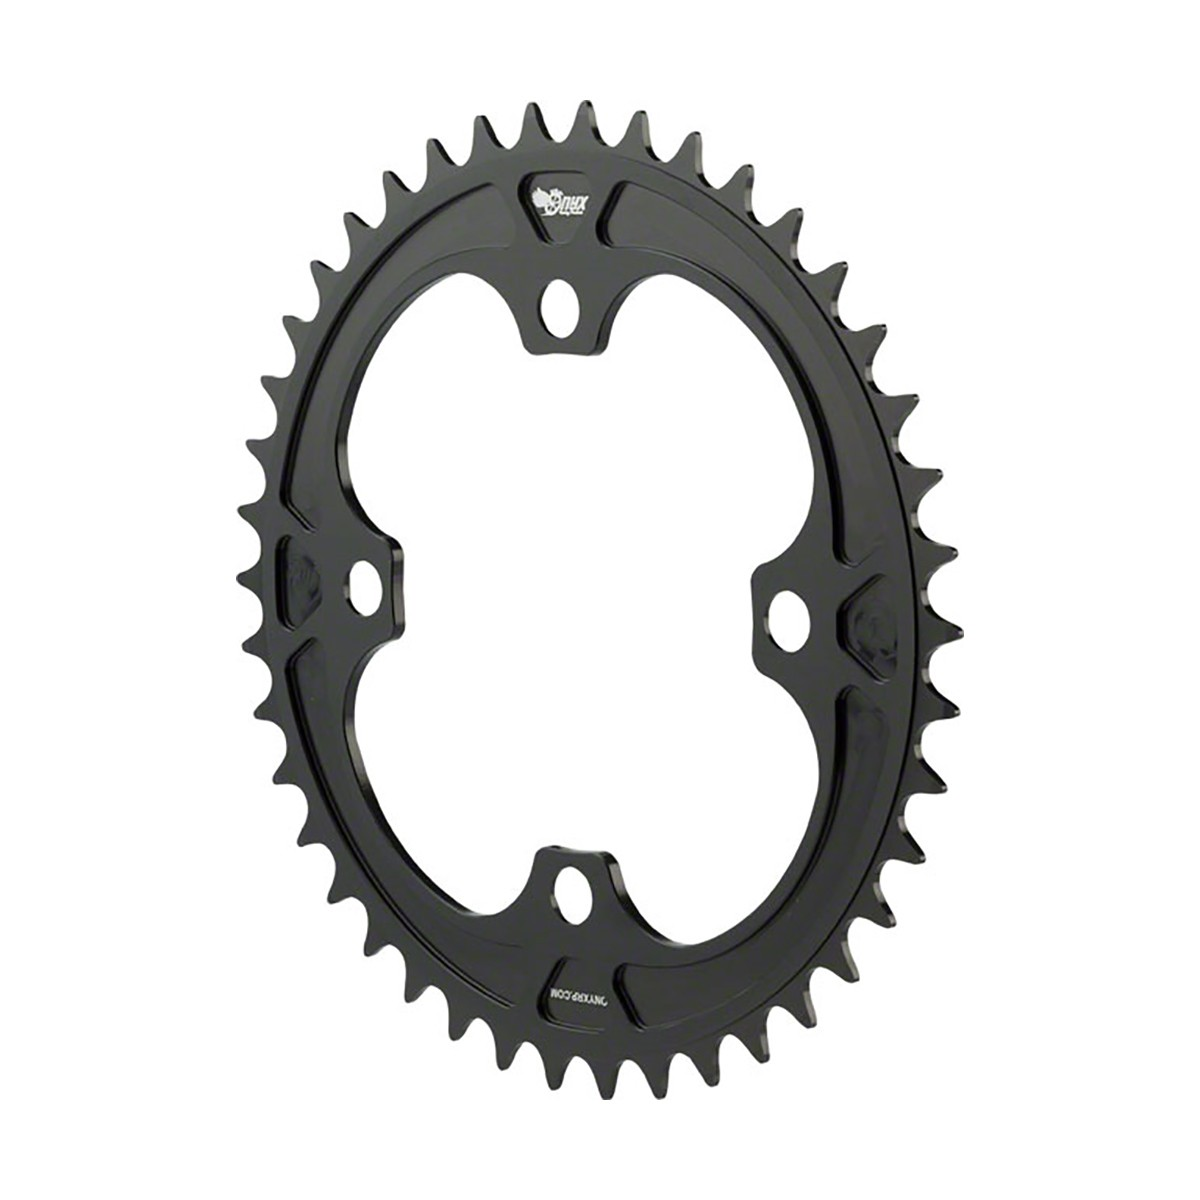 ONYX BMX CHAINRING 4 BOLT 104MM ANODIZED BLACK